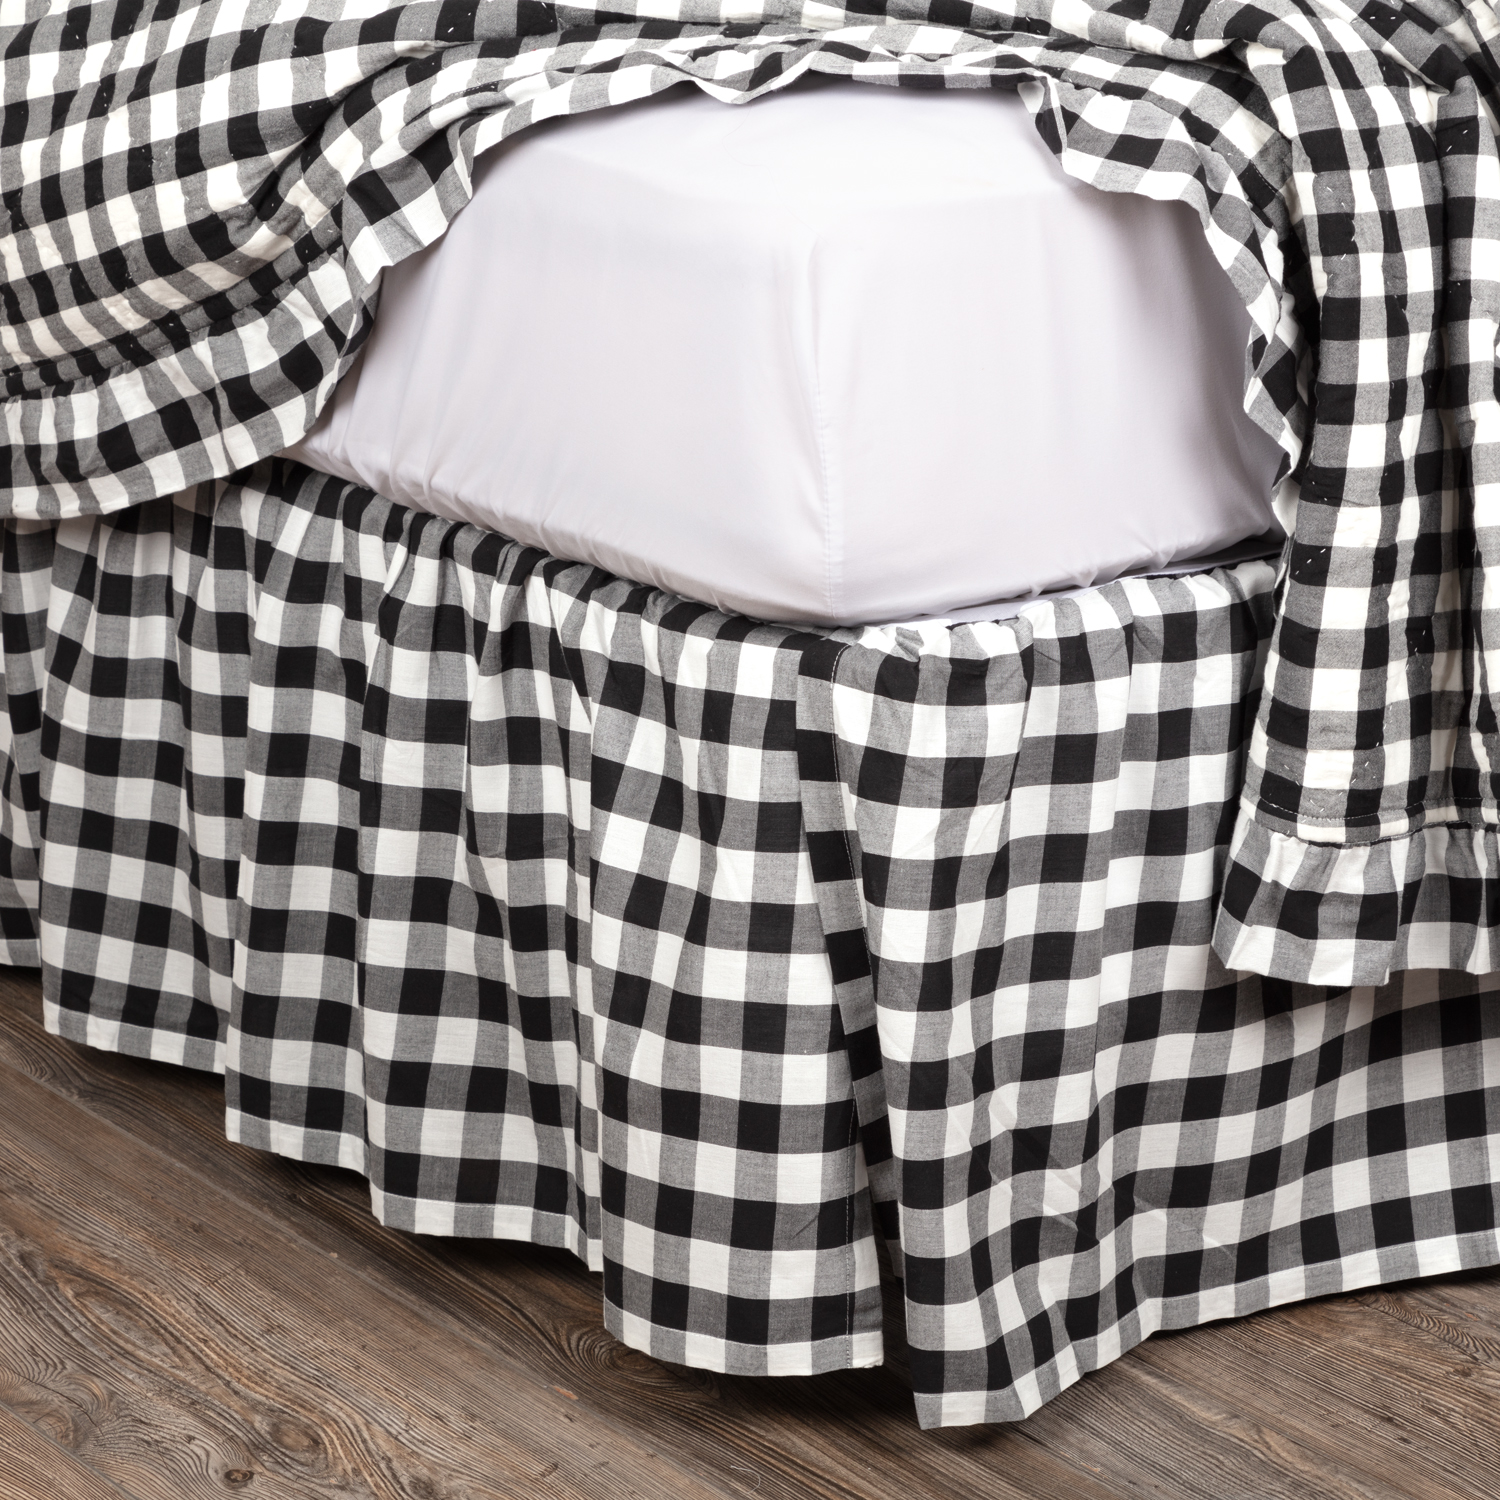 Annie Buffalo Black Check Queen Bed Skirt 60x80x16 40407